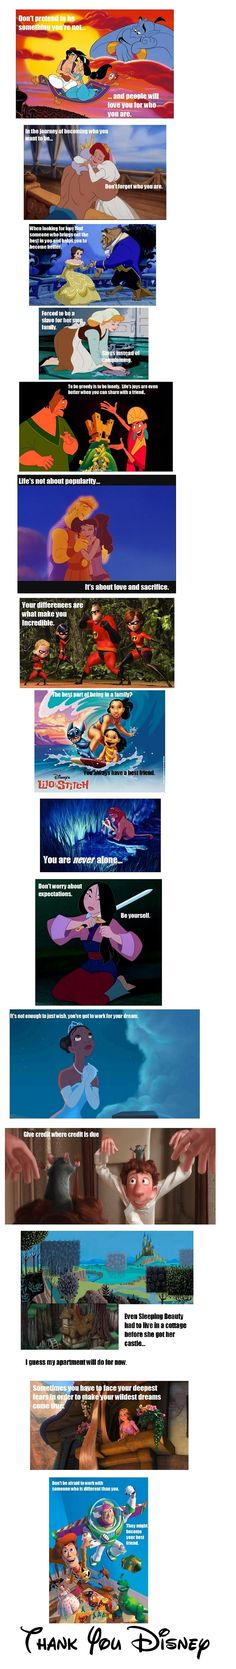 Life lessons from Disney - This almost made me cry.